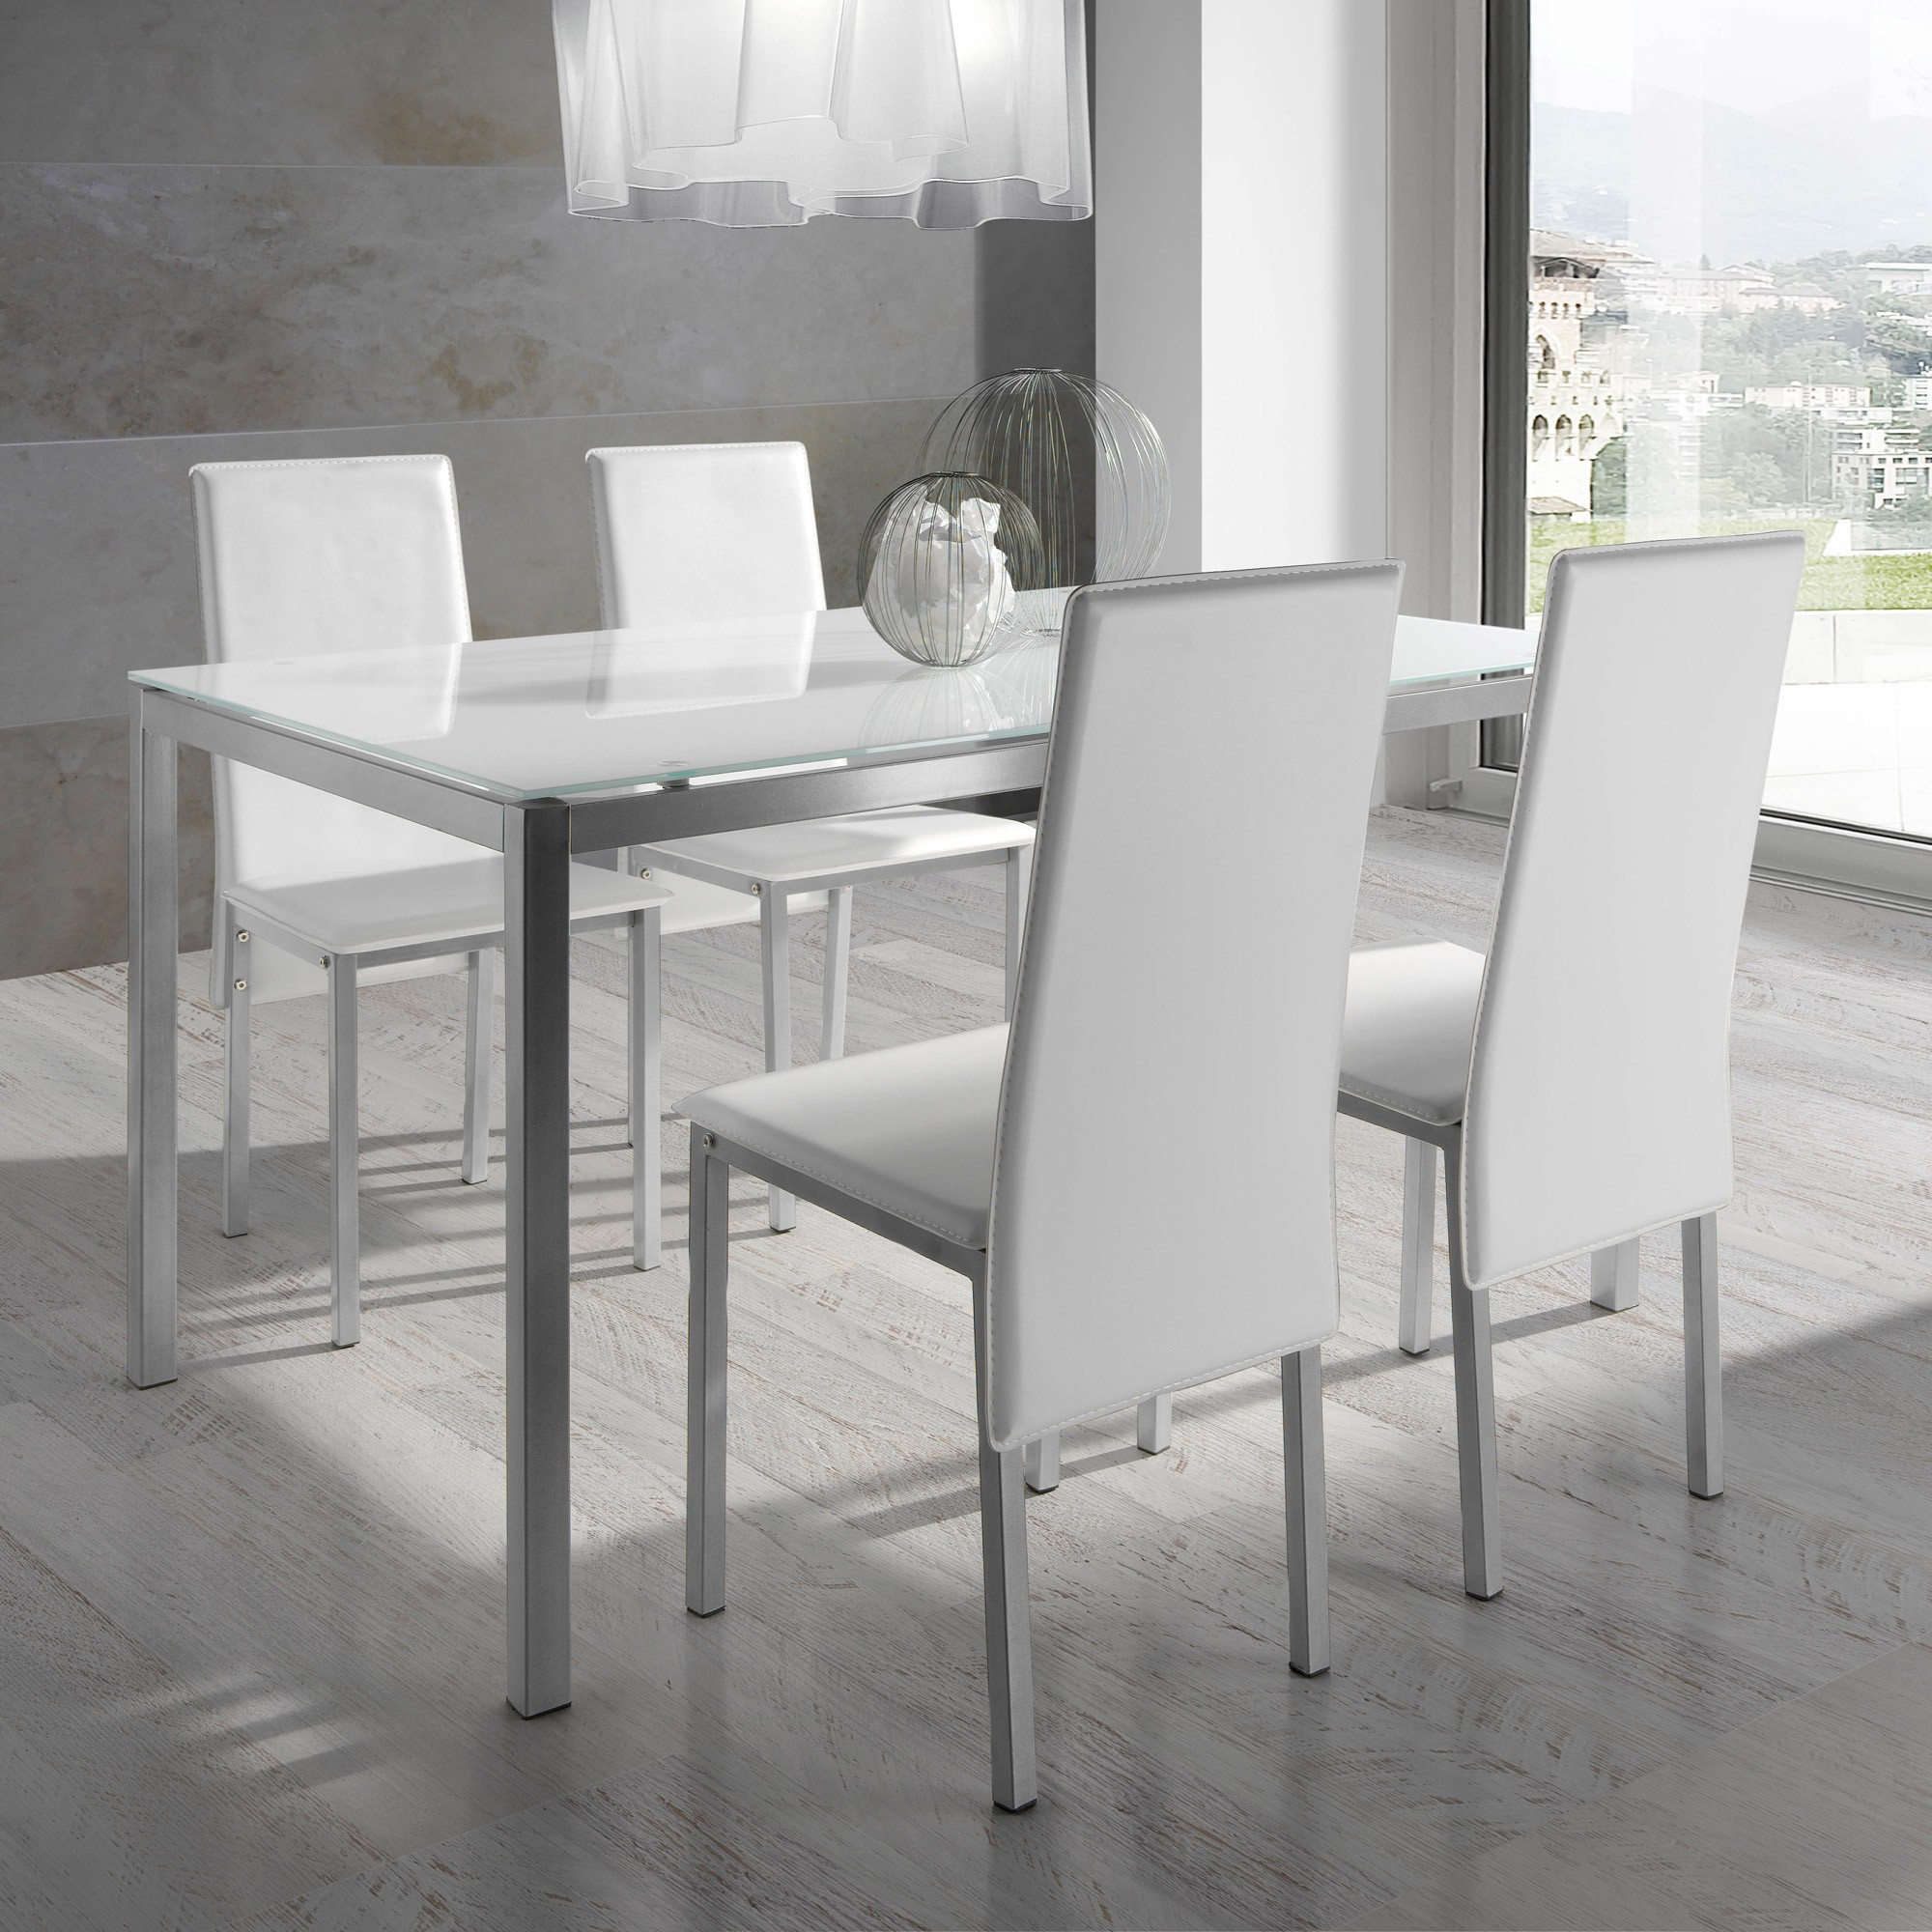 Ensemble table et chaise salle a manger but chaise for Ensemble table et chaise blanche